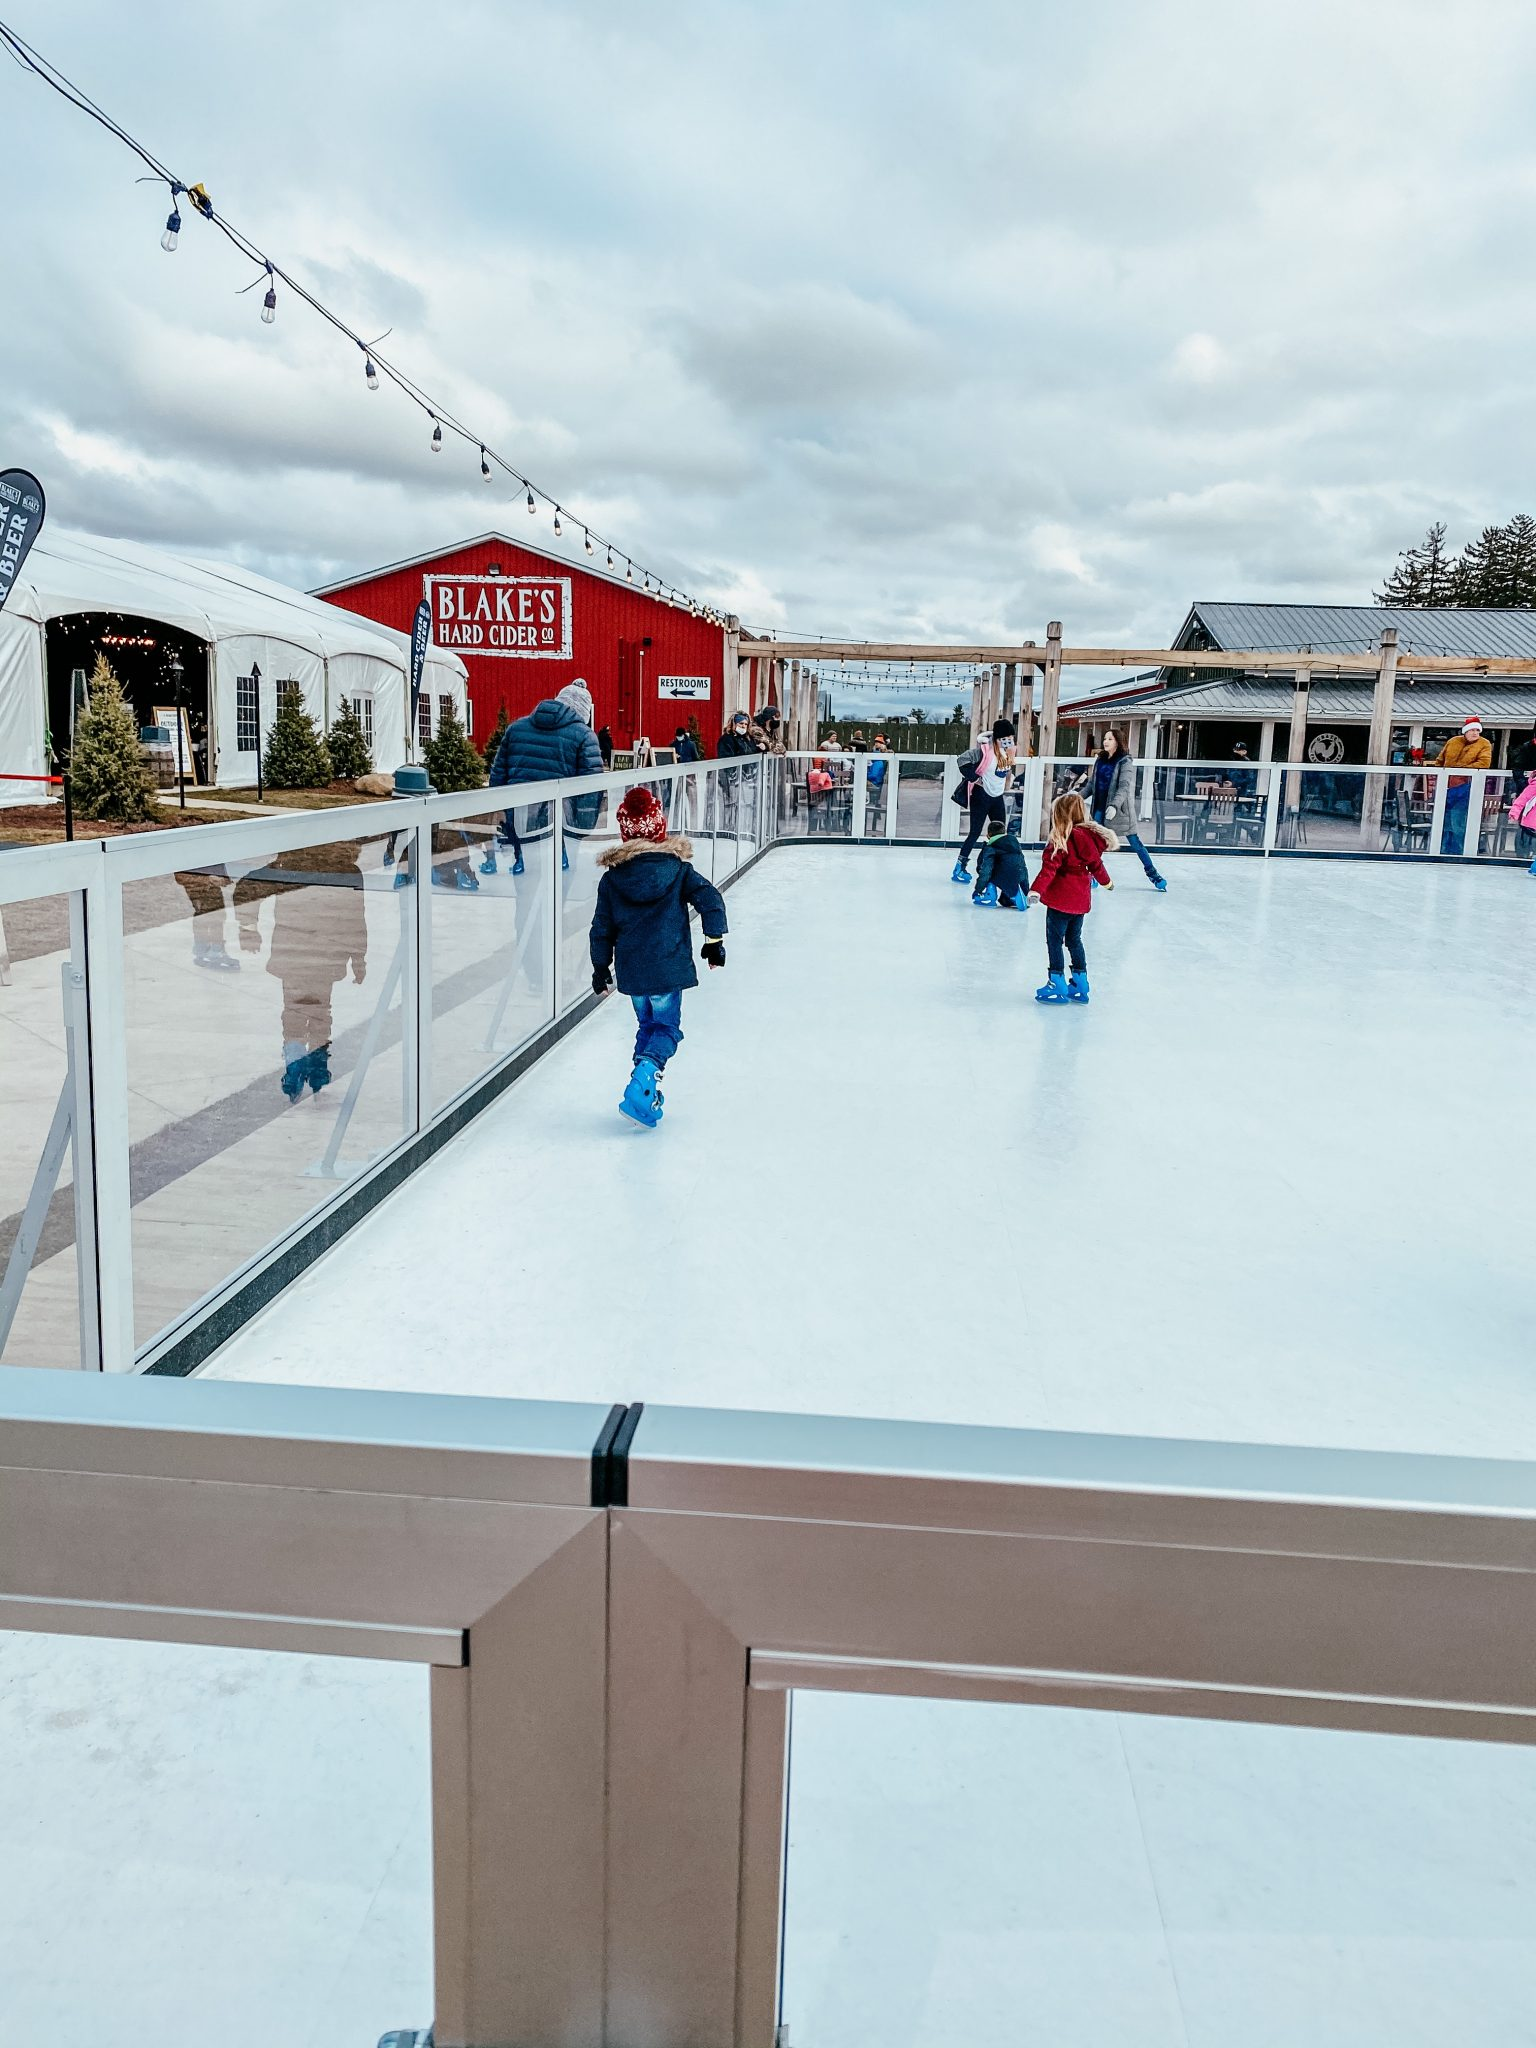 Winter outings with the family | Daily Splendor Life and Style Blog | Ice Skating #familychristmas #holidayfestivities #familyadventures #chevytahoe #2020activities #Christmastree #momlife